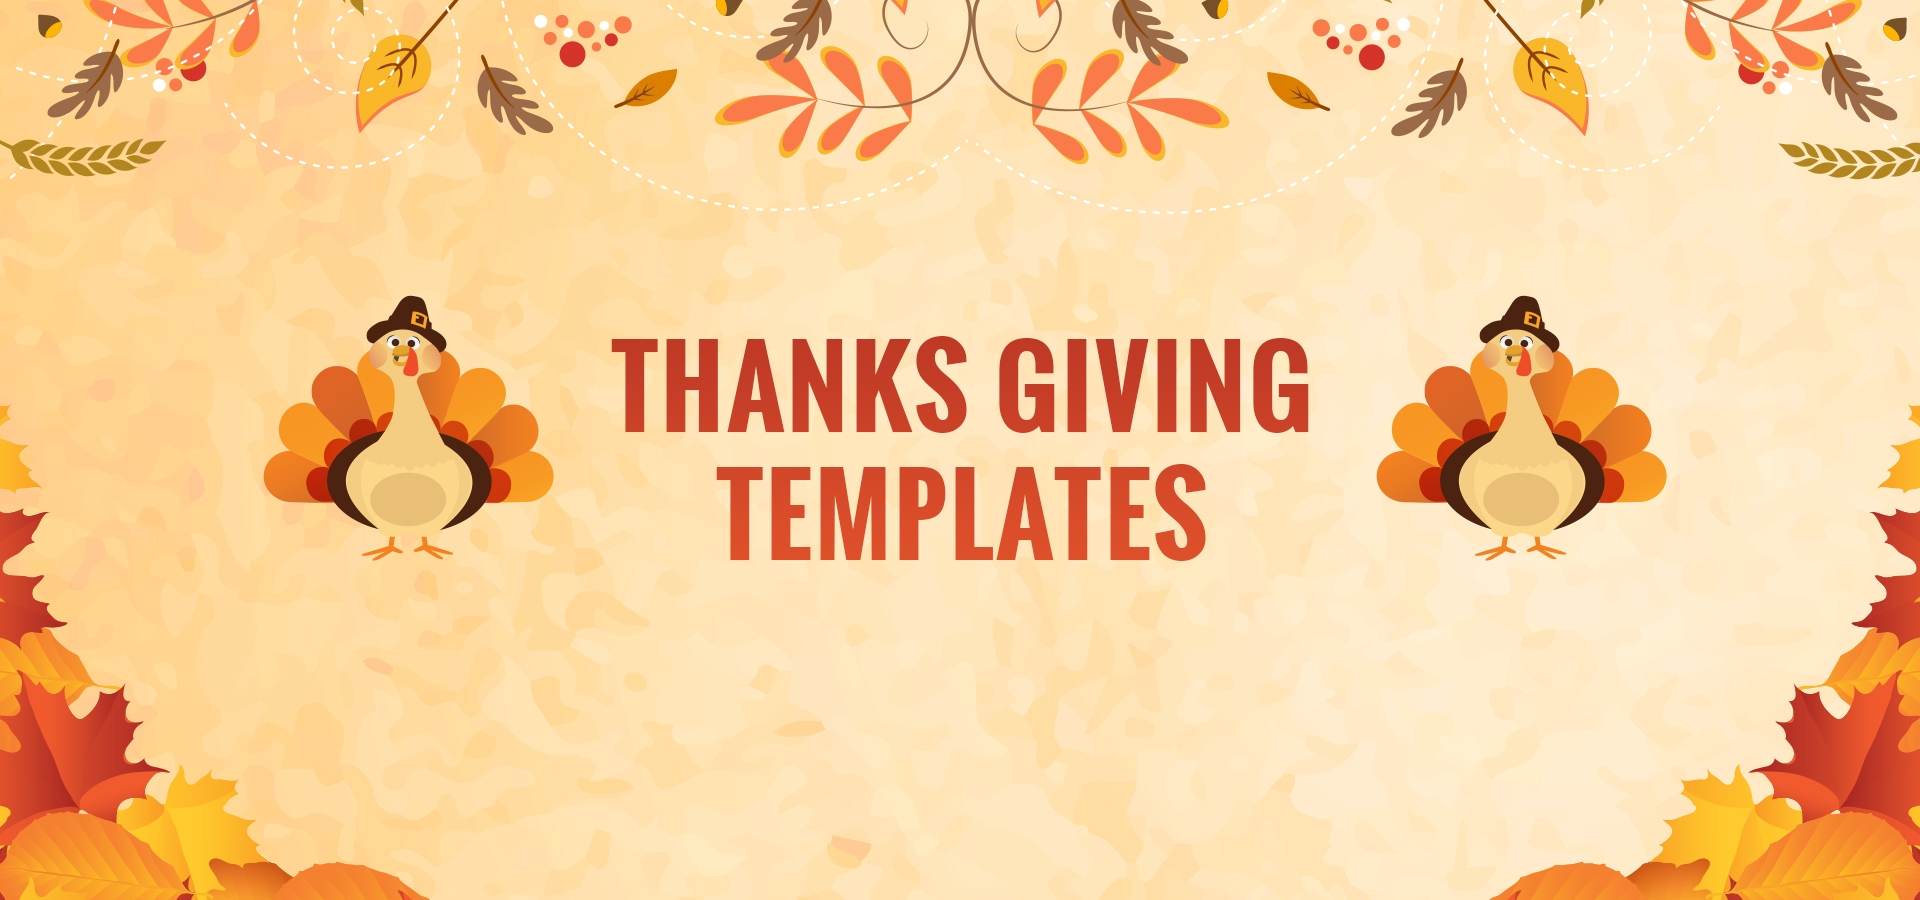 45 printable thanksgiving template designs